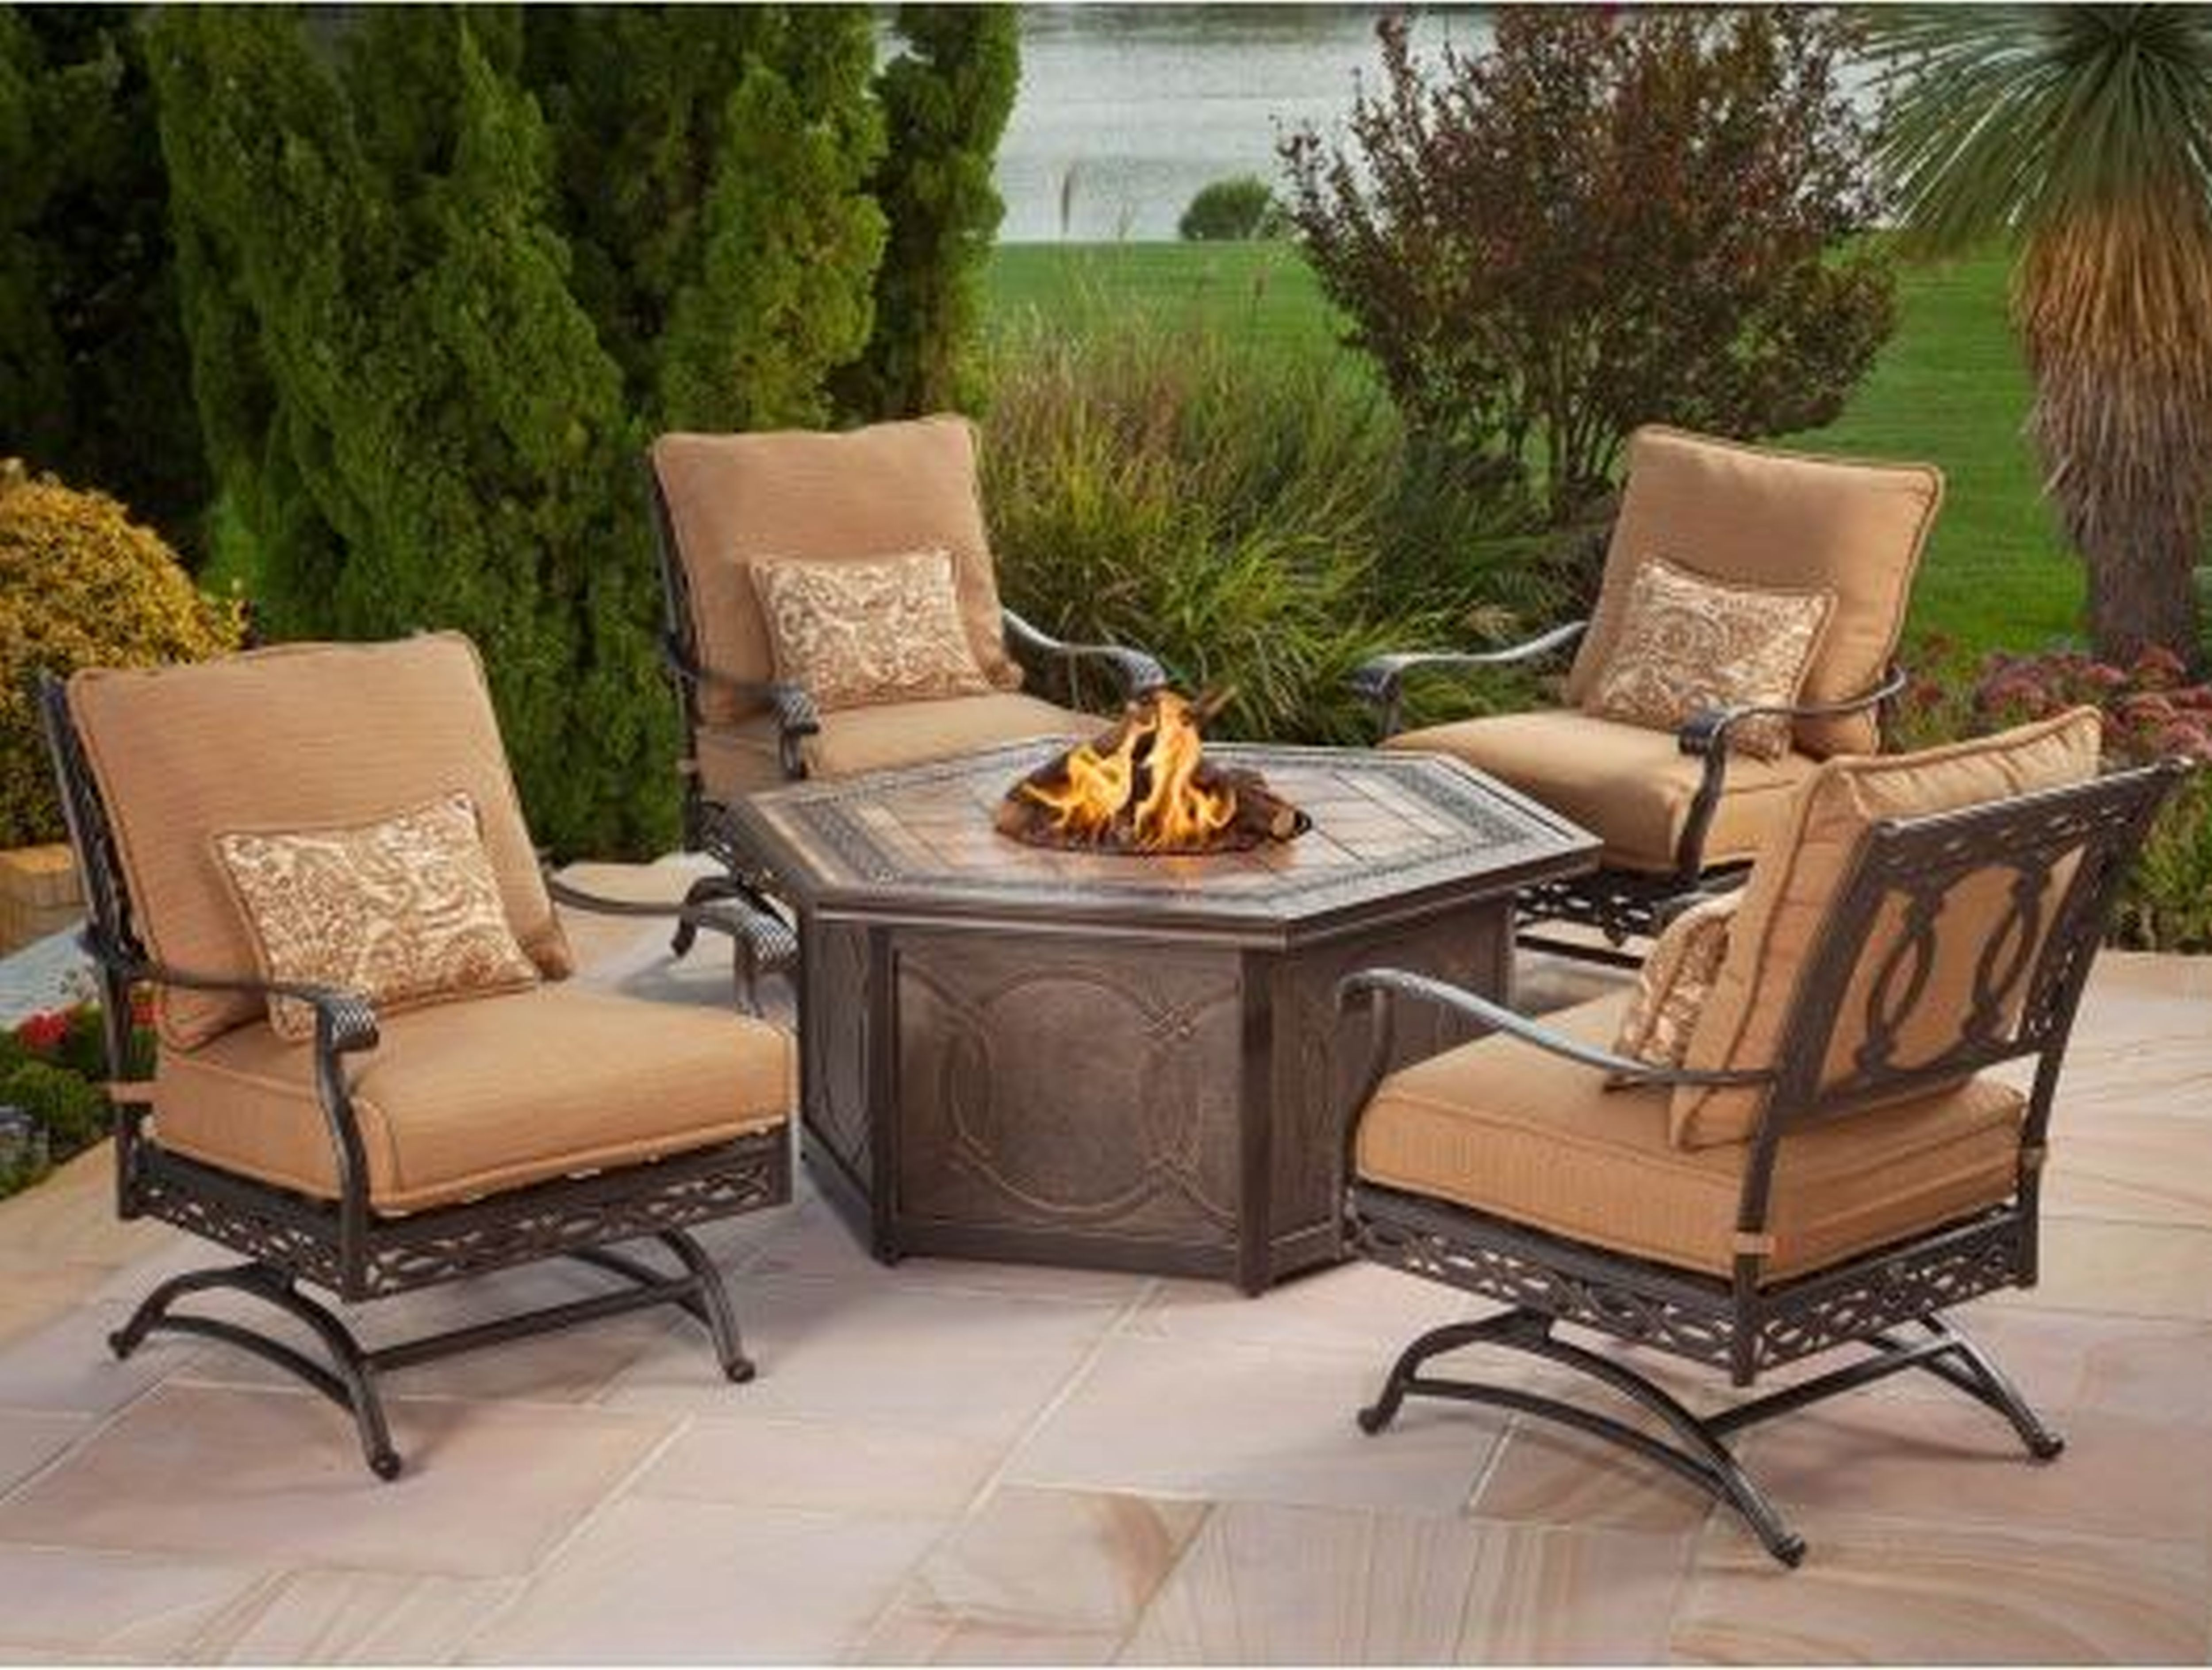 Exterior Astonishing Outdoor Patio Furniture With Stone Coffee Table With Fireplace A Patio Furniture For Sale Lowes Patio Furniture Clearance Patio Furniture